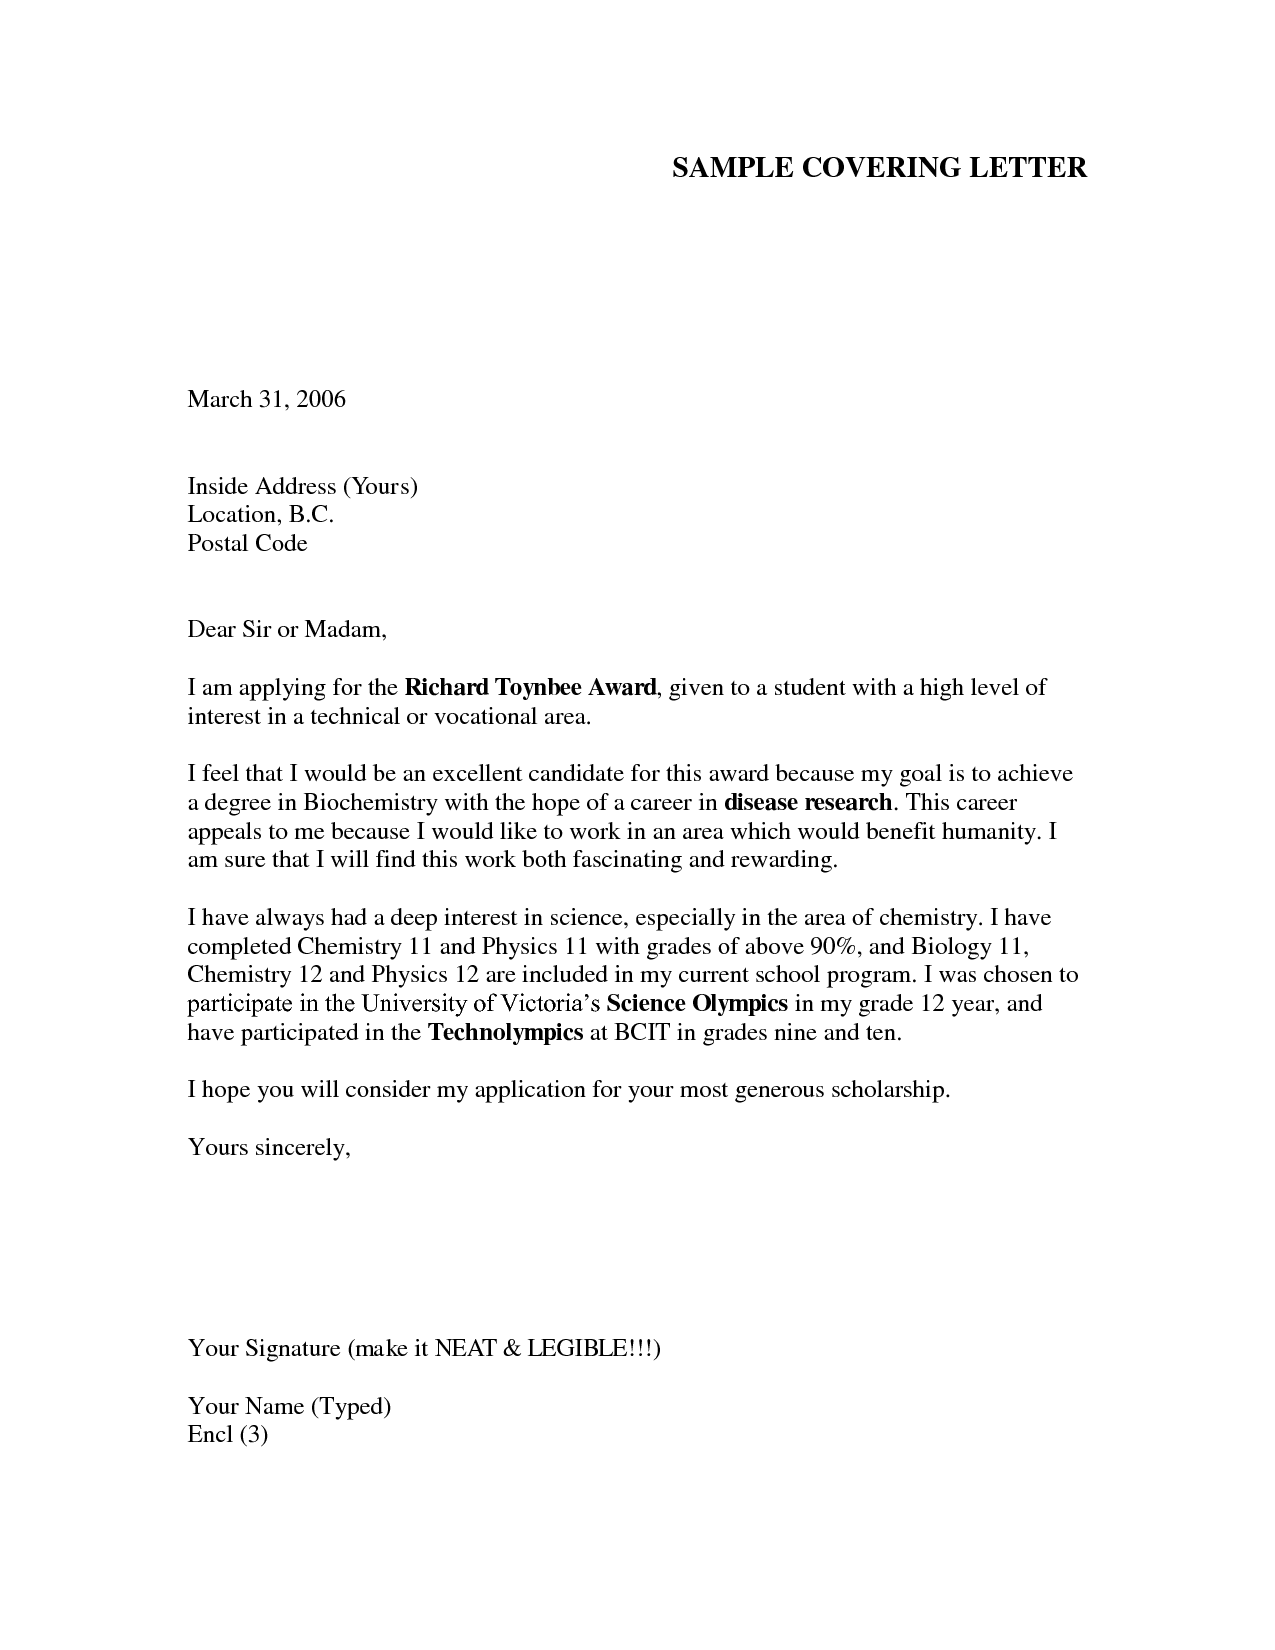 Cover letter example for job application cover letter for What is a covering letter when applying for a job